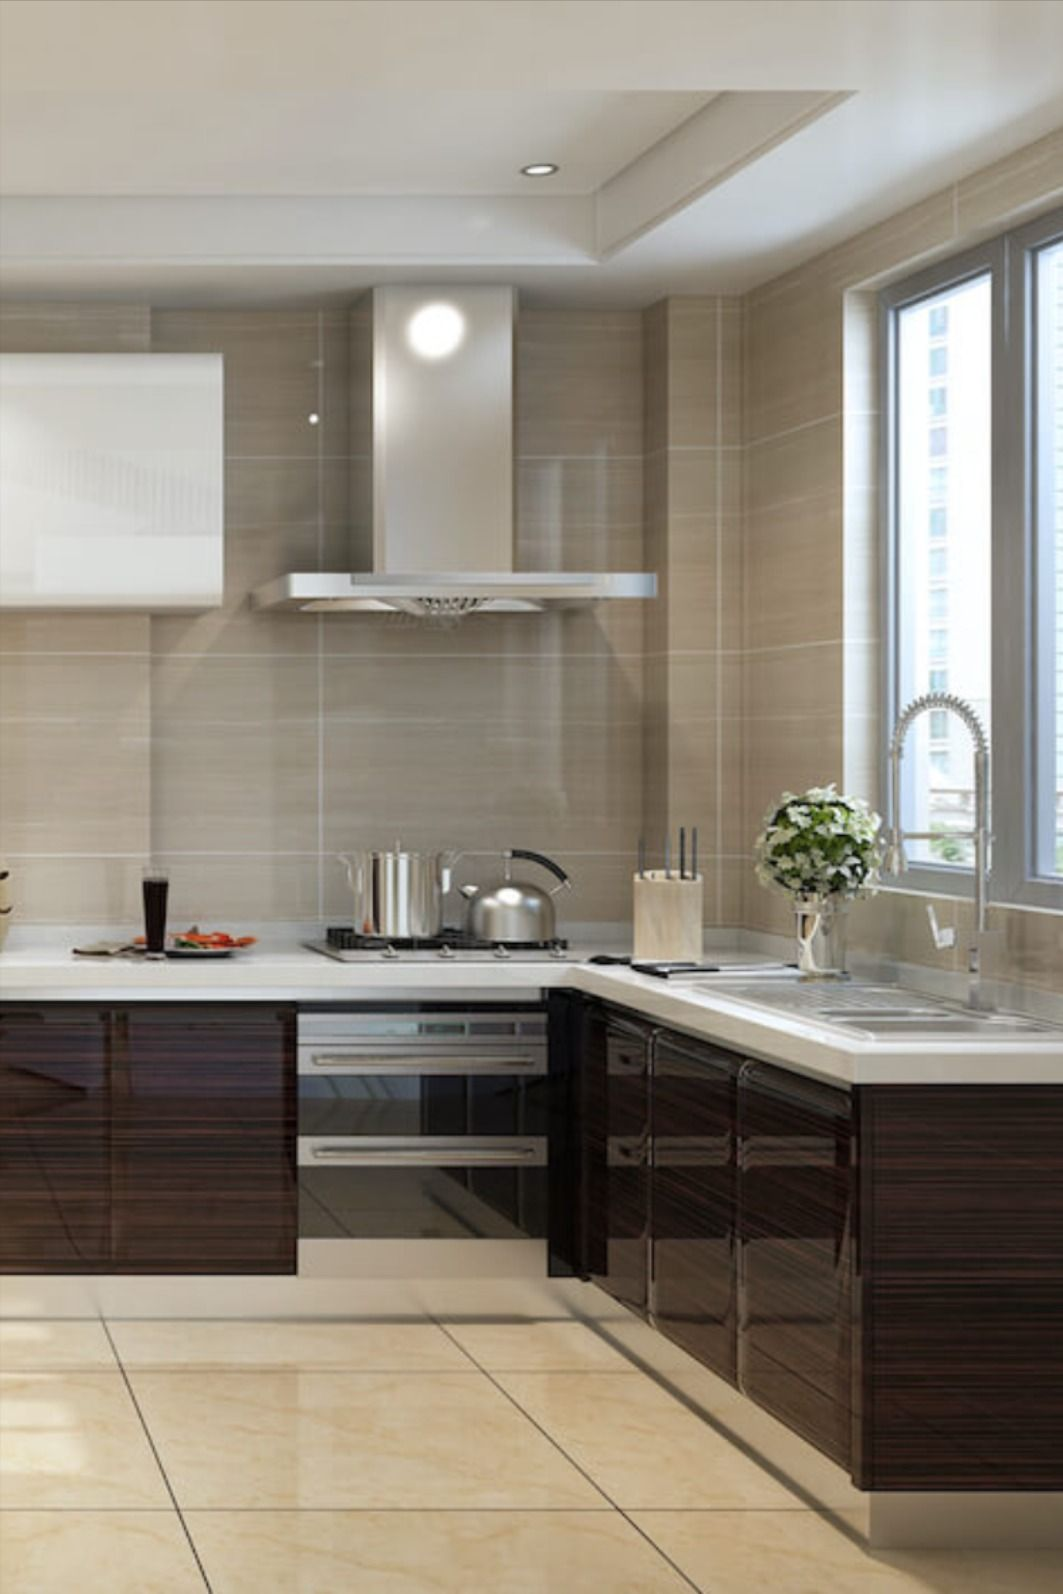 High Gloss Lacquer Kitchen Cabinets Modern Kitchen Set Mirrored Kitchen Cabinet Luxury Kitchen Design